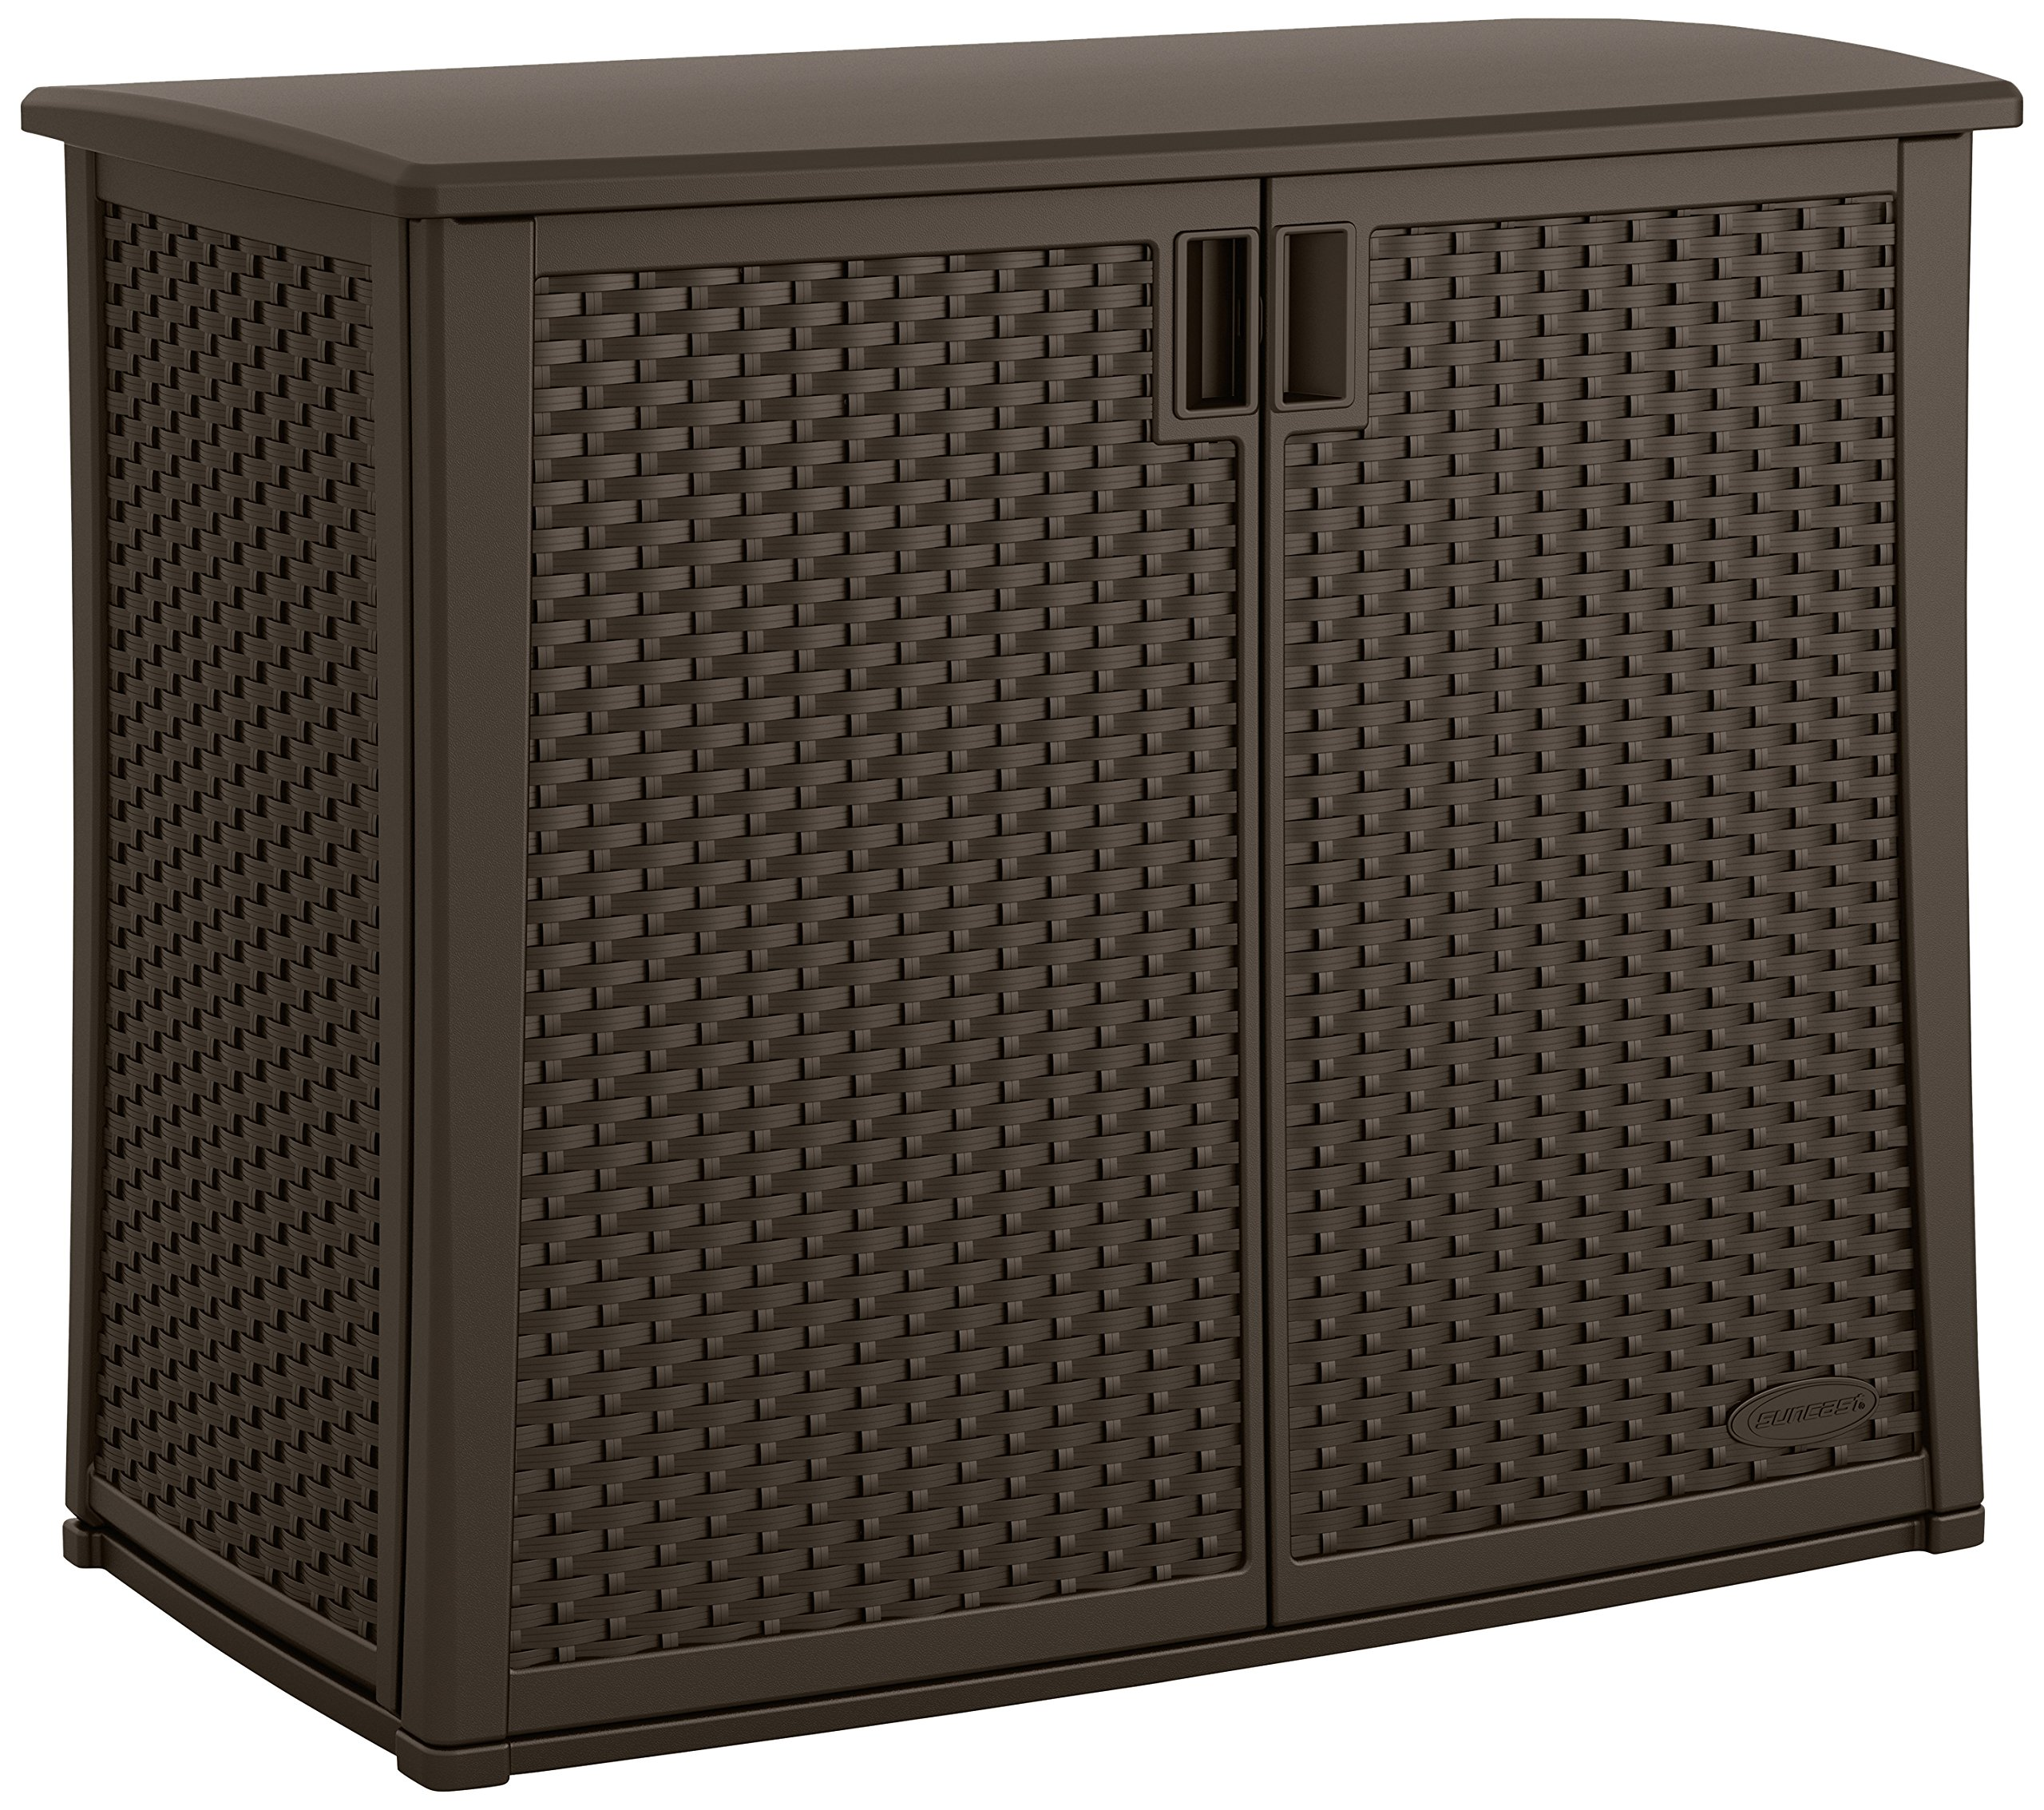 Grill Storage. Suncast Elements Outdoor 40 Inch Wide Cabinet